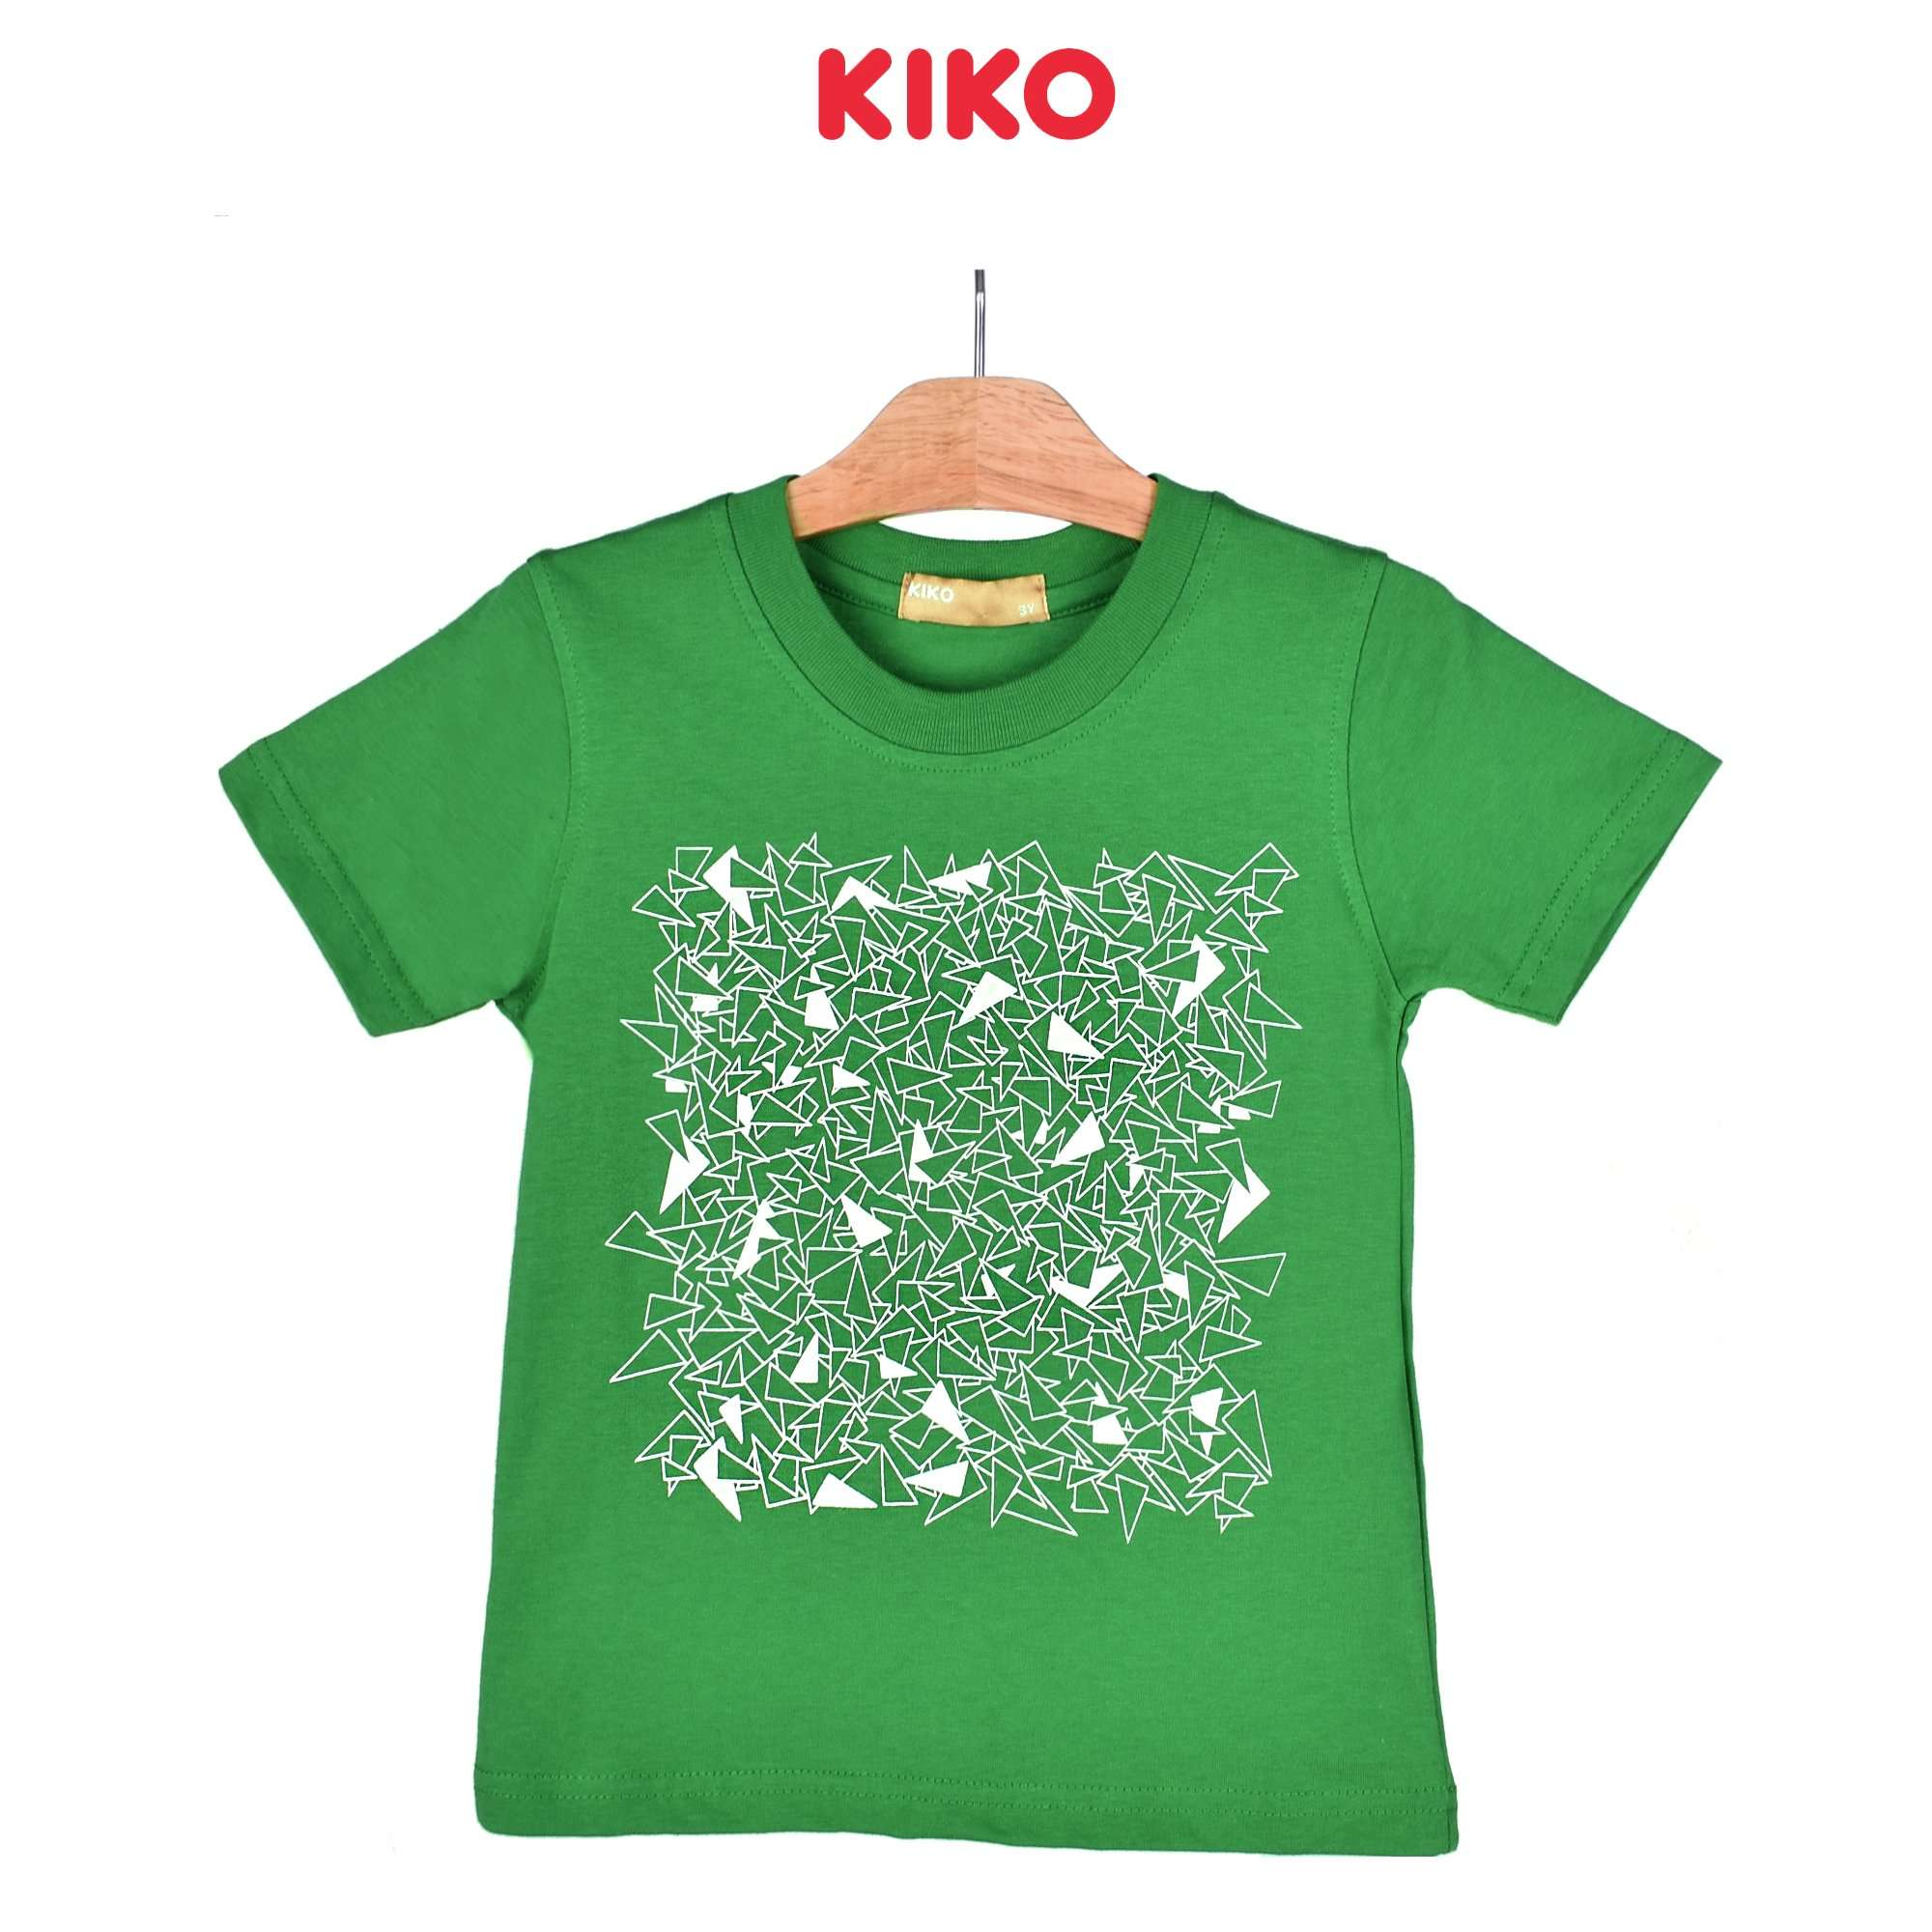 KIKO Boy Short Sleeve Tee - Green 121251-114 : Buy KIKO online at CMG.MY